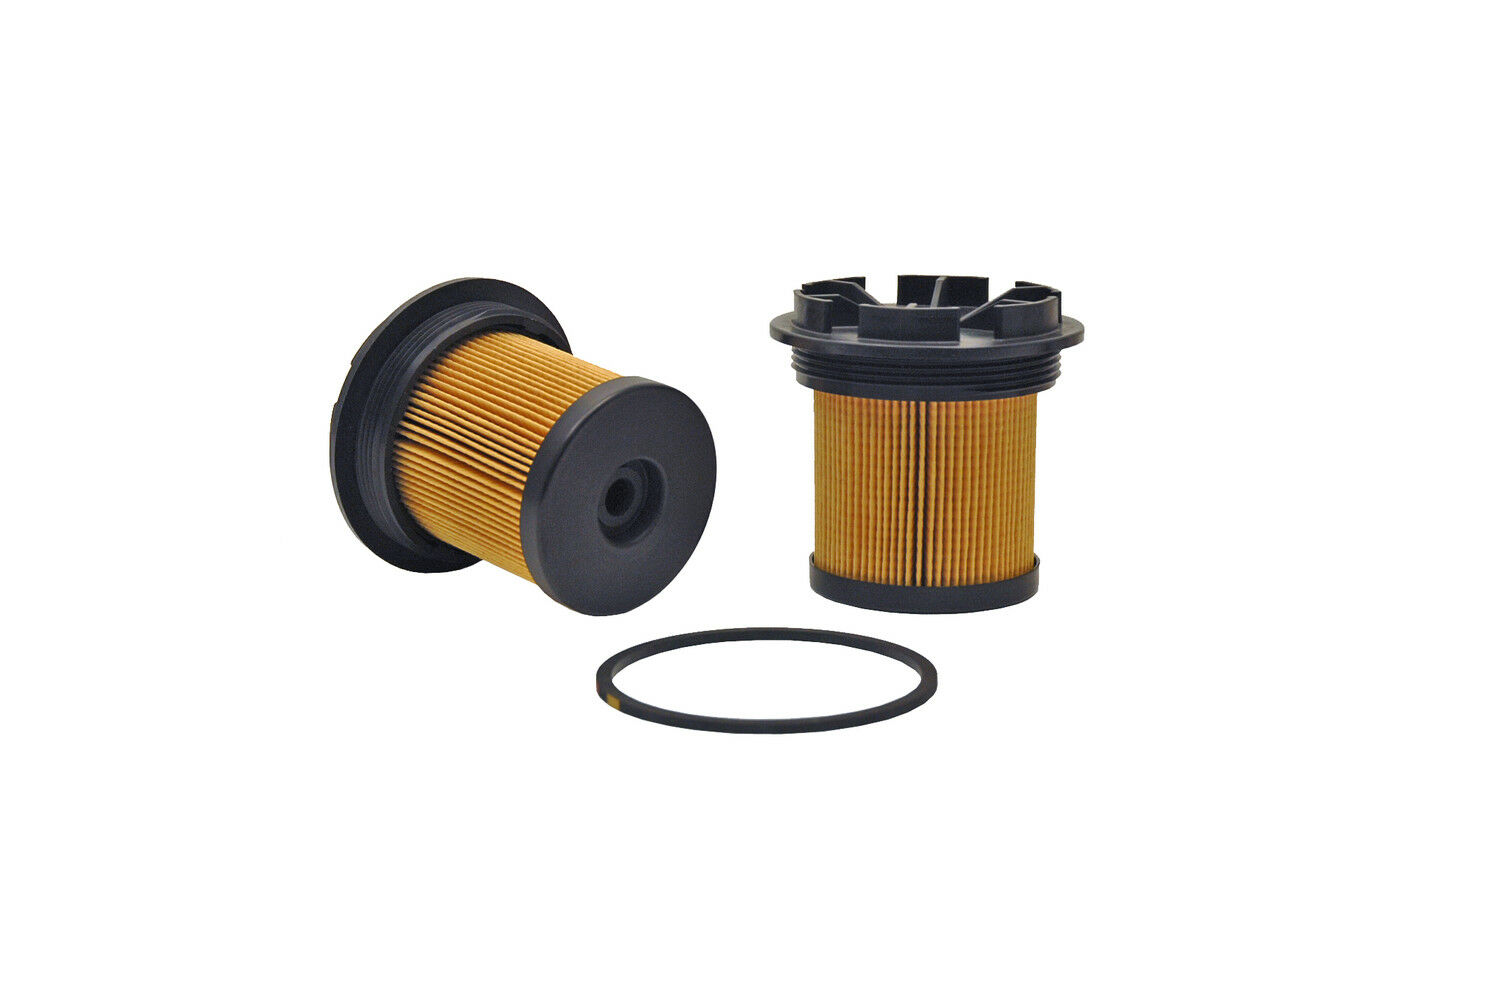 Wix 33817 Fuel Filter 3037 Picclick Gm Filters 1 Of 1free Shipping